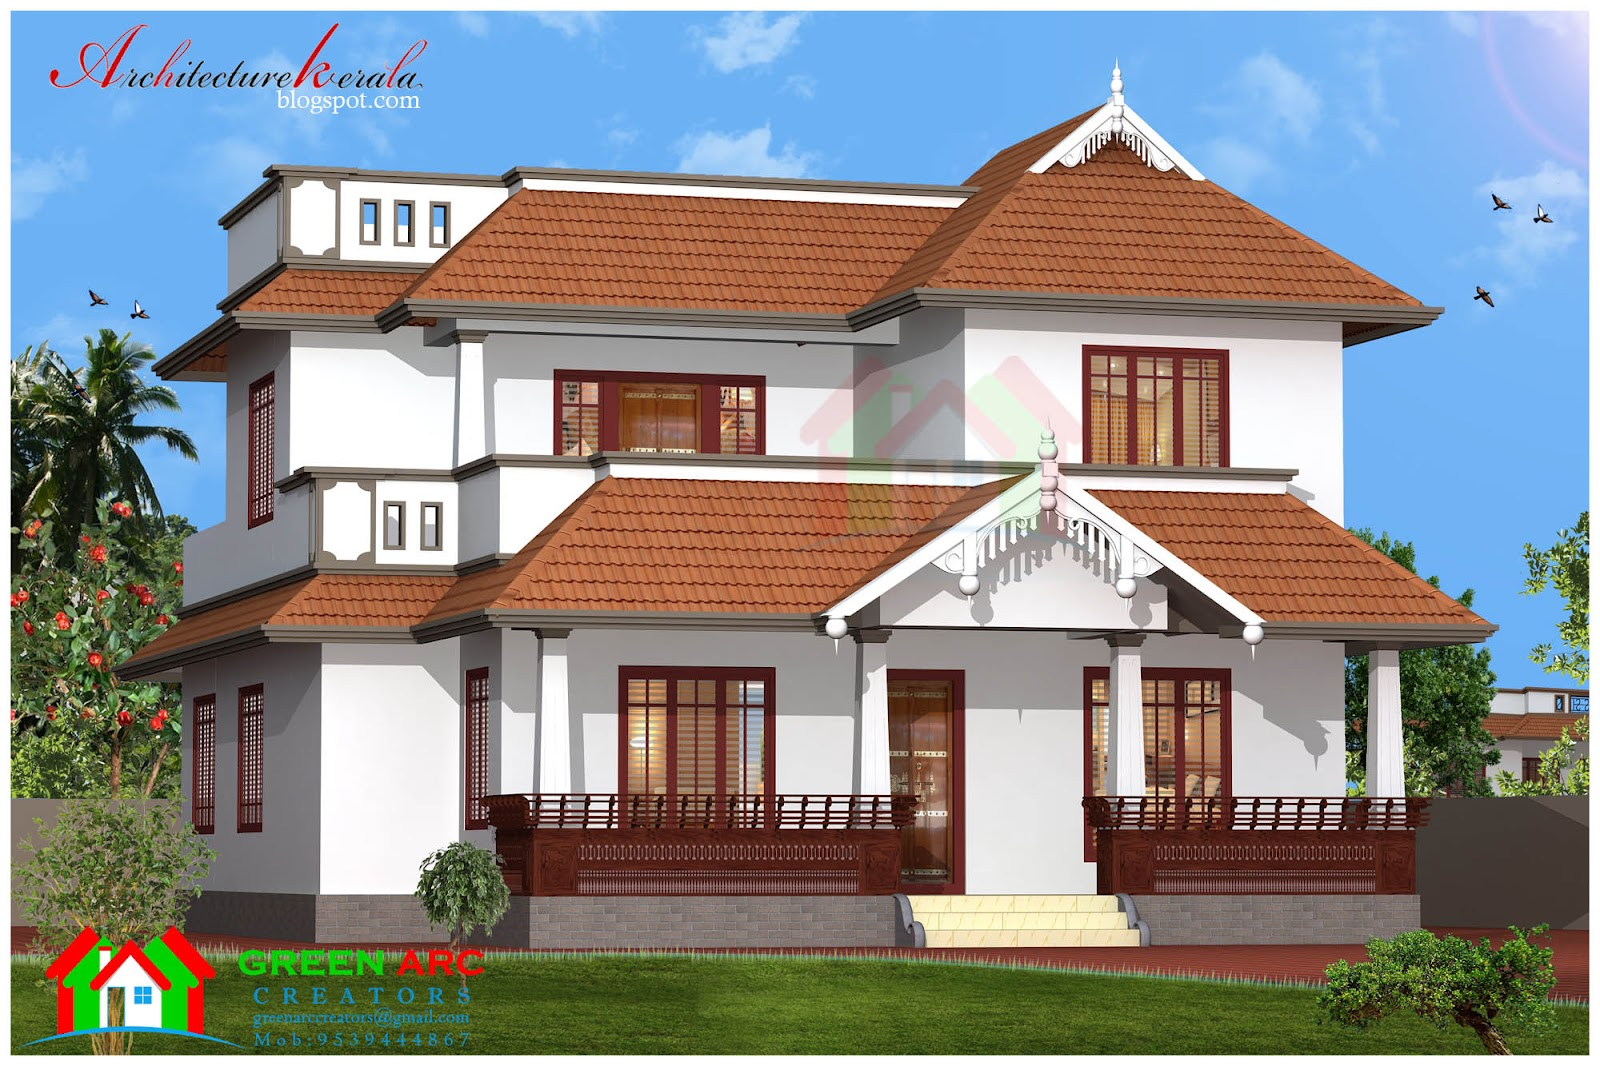 Architecture kerala traditional style kerala house plan House plan and elevation drawings